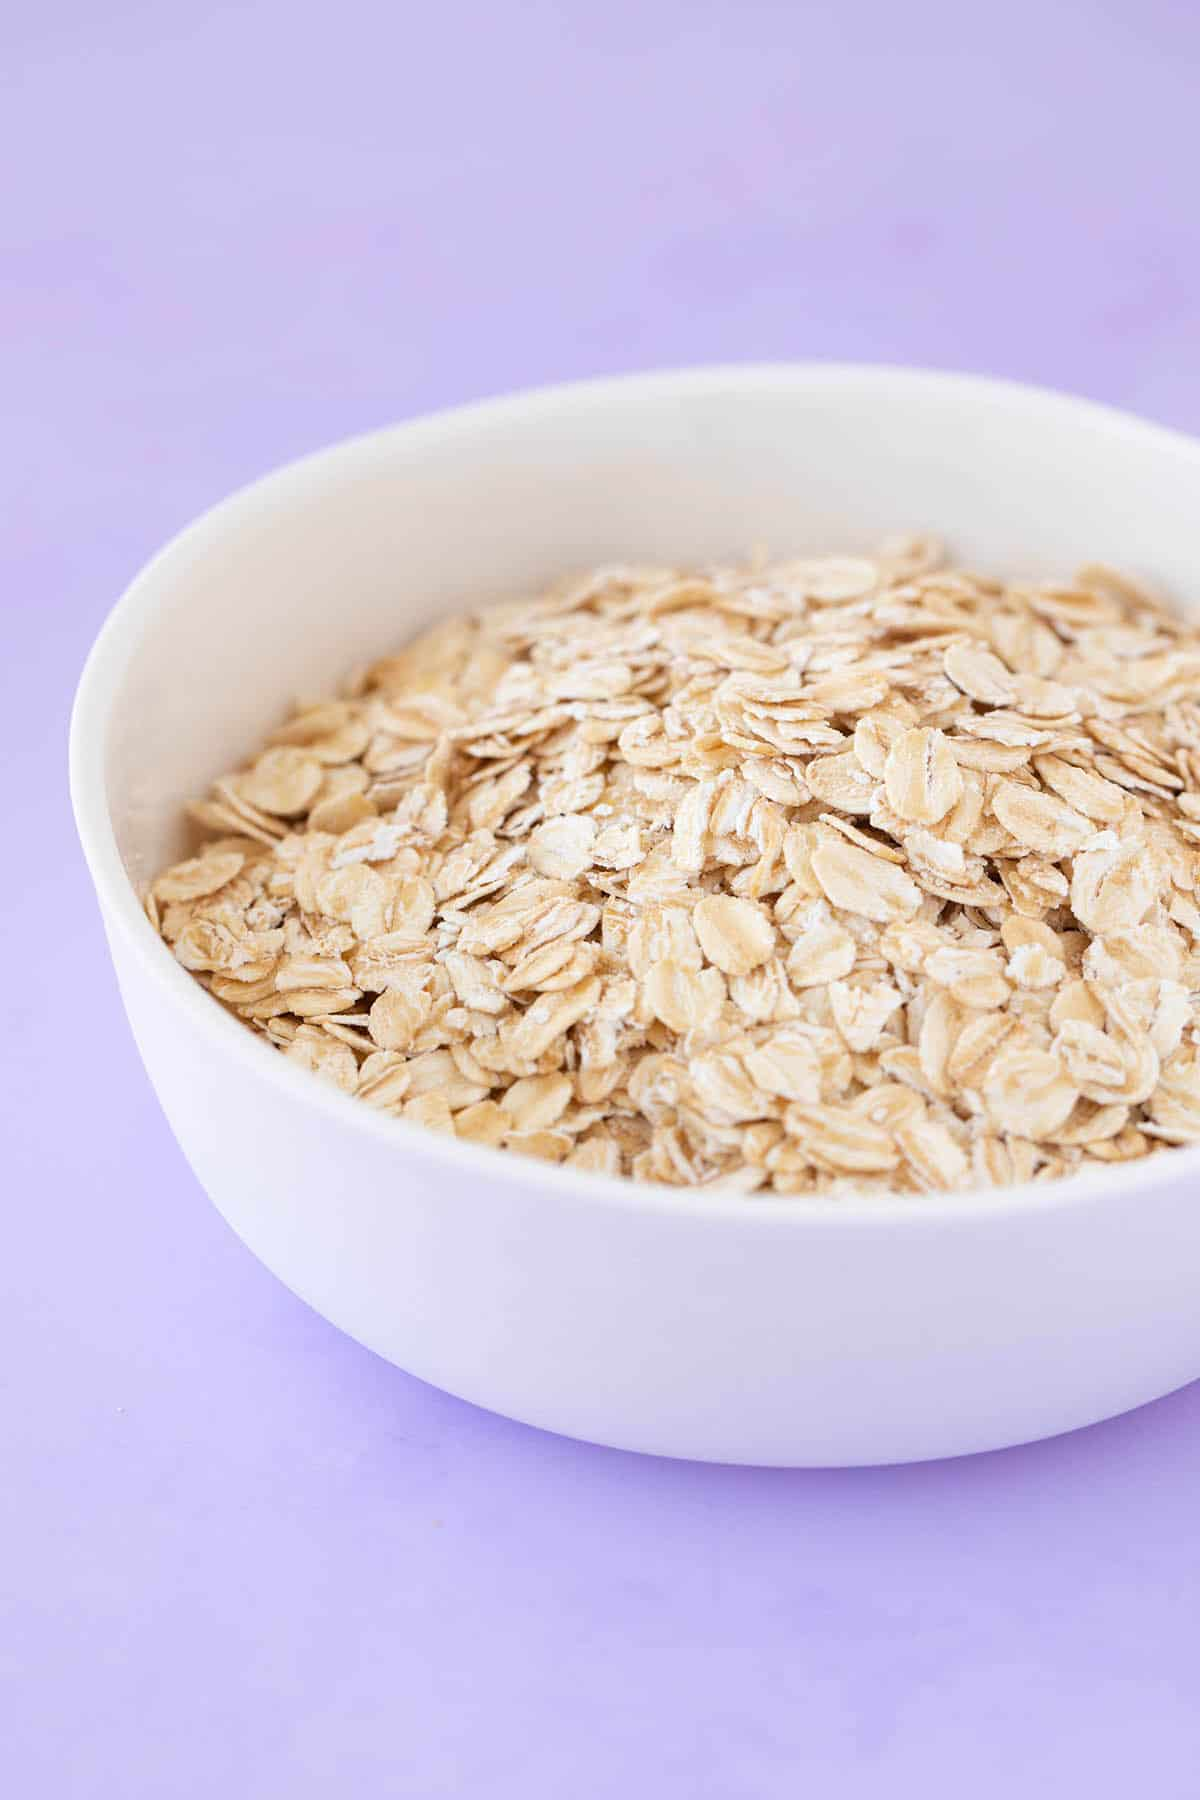 A white bowl filled with whole rolled oats